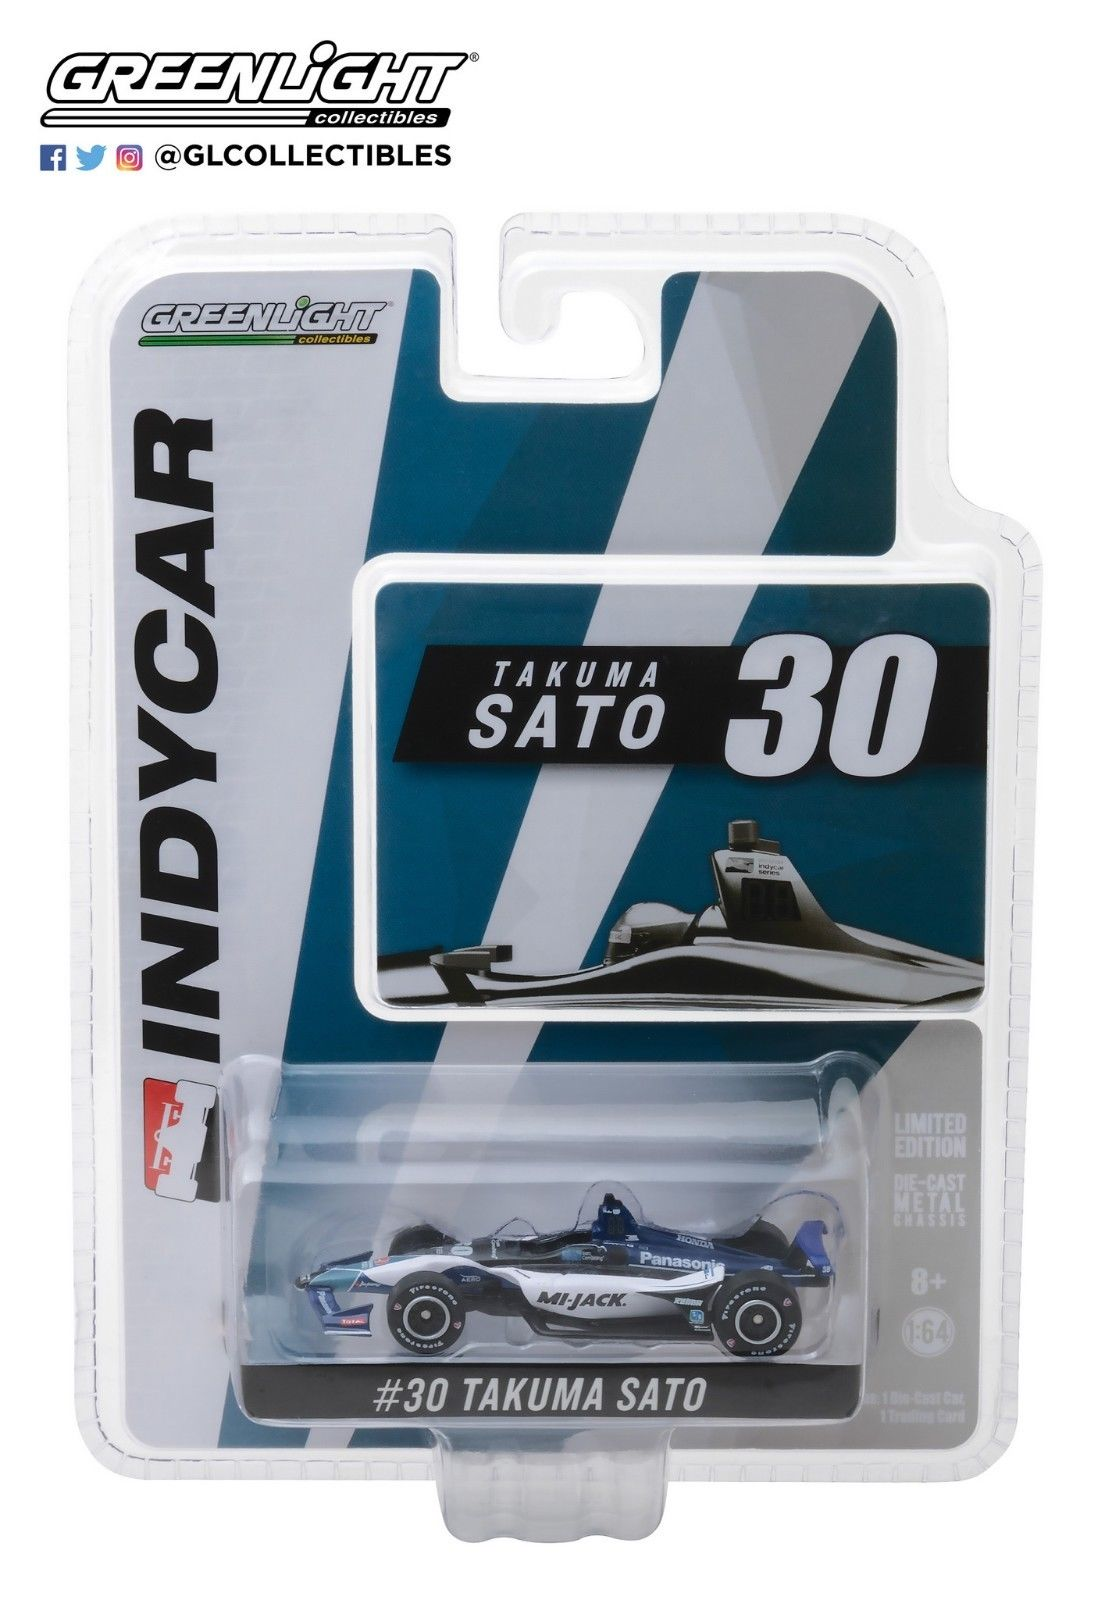 Takuma Sato #30 1/64th 2018 Greenlight MI-JACK  Indycar